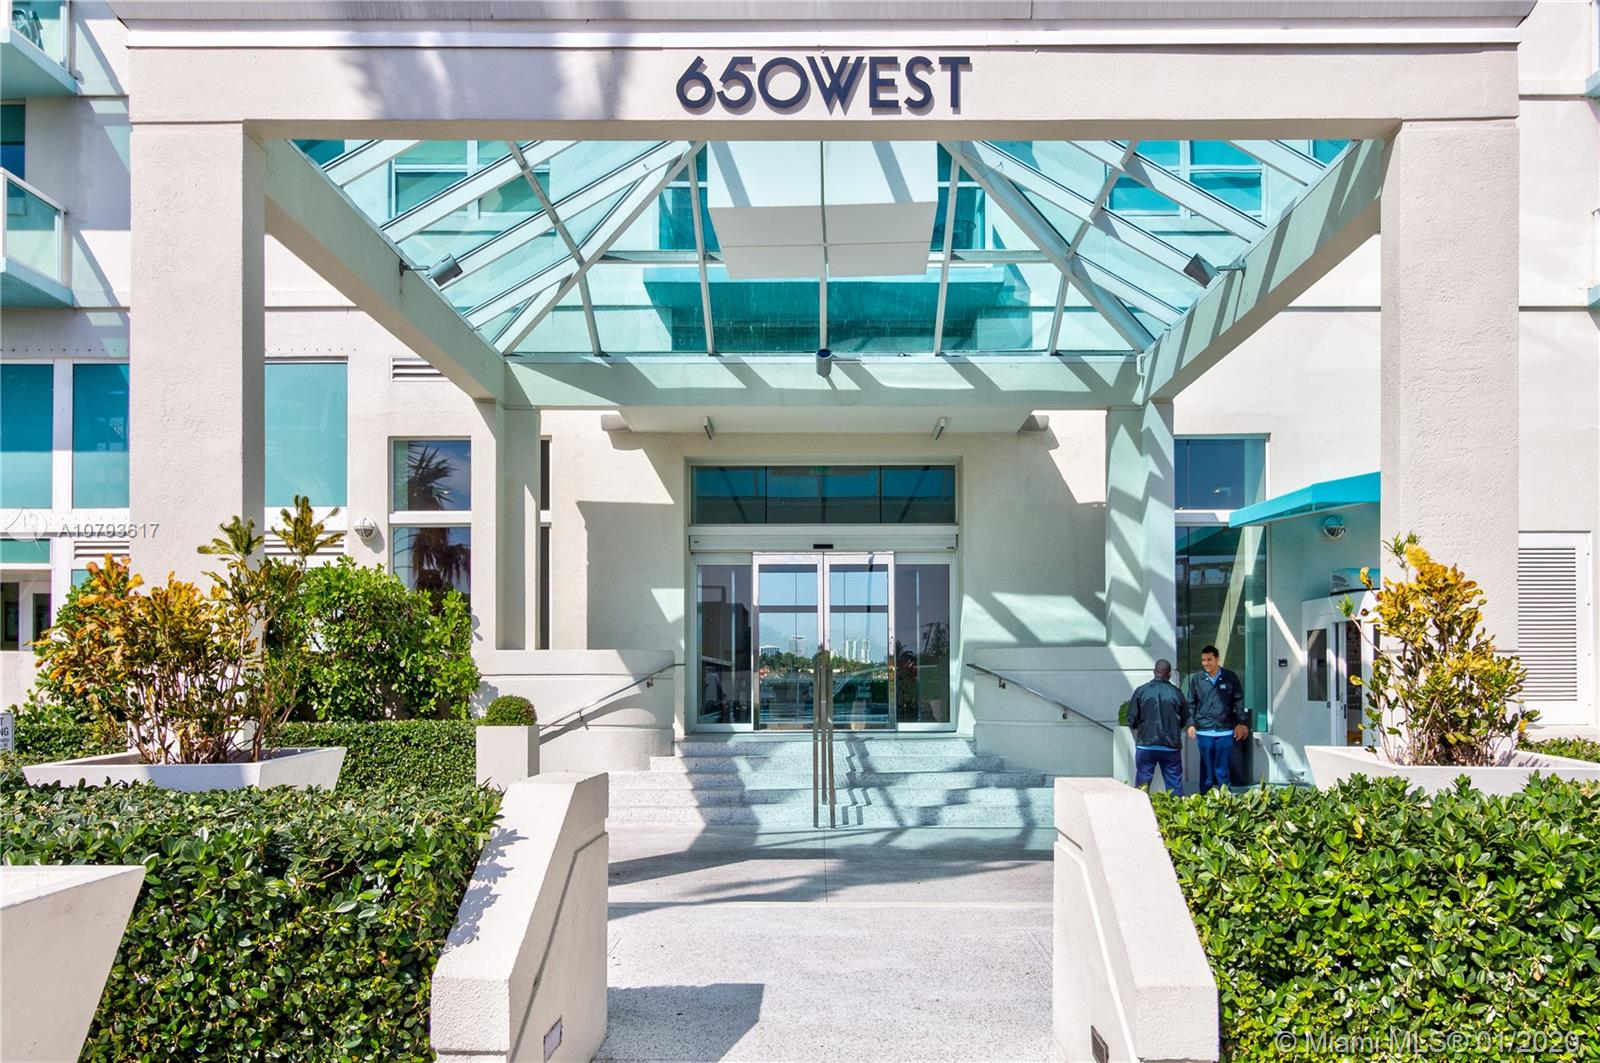 Photo of 650 West Ave #305 listing for Sale